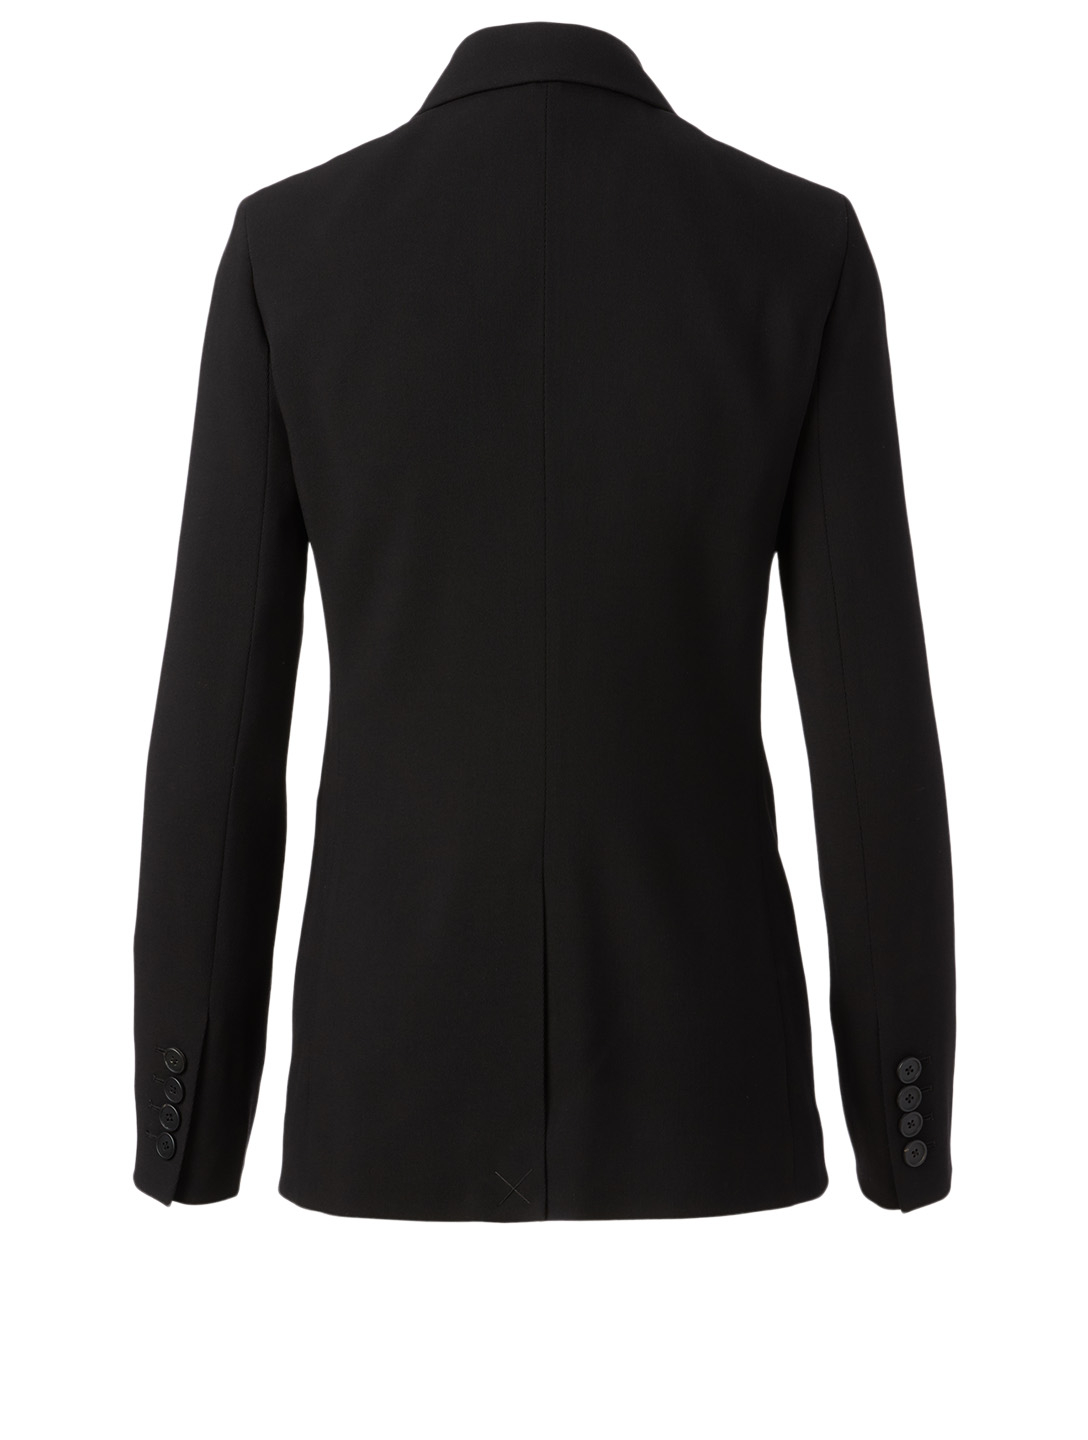 THE ROW Kiro Wool Blazer Women's Black